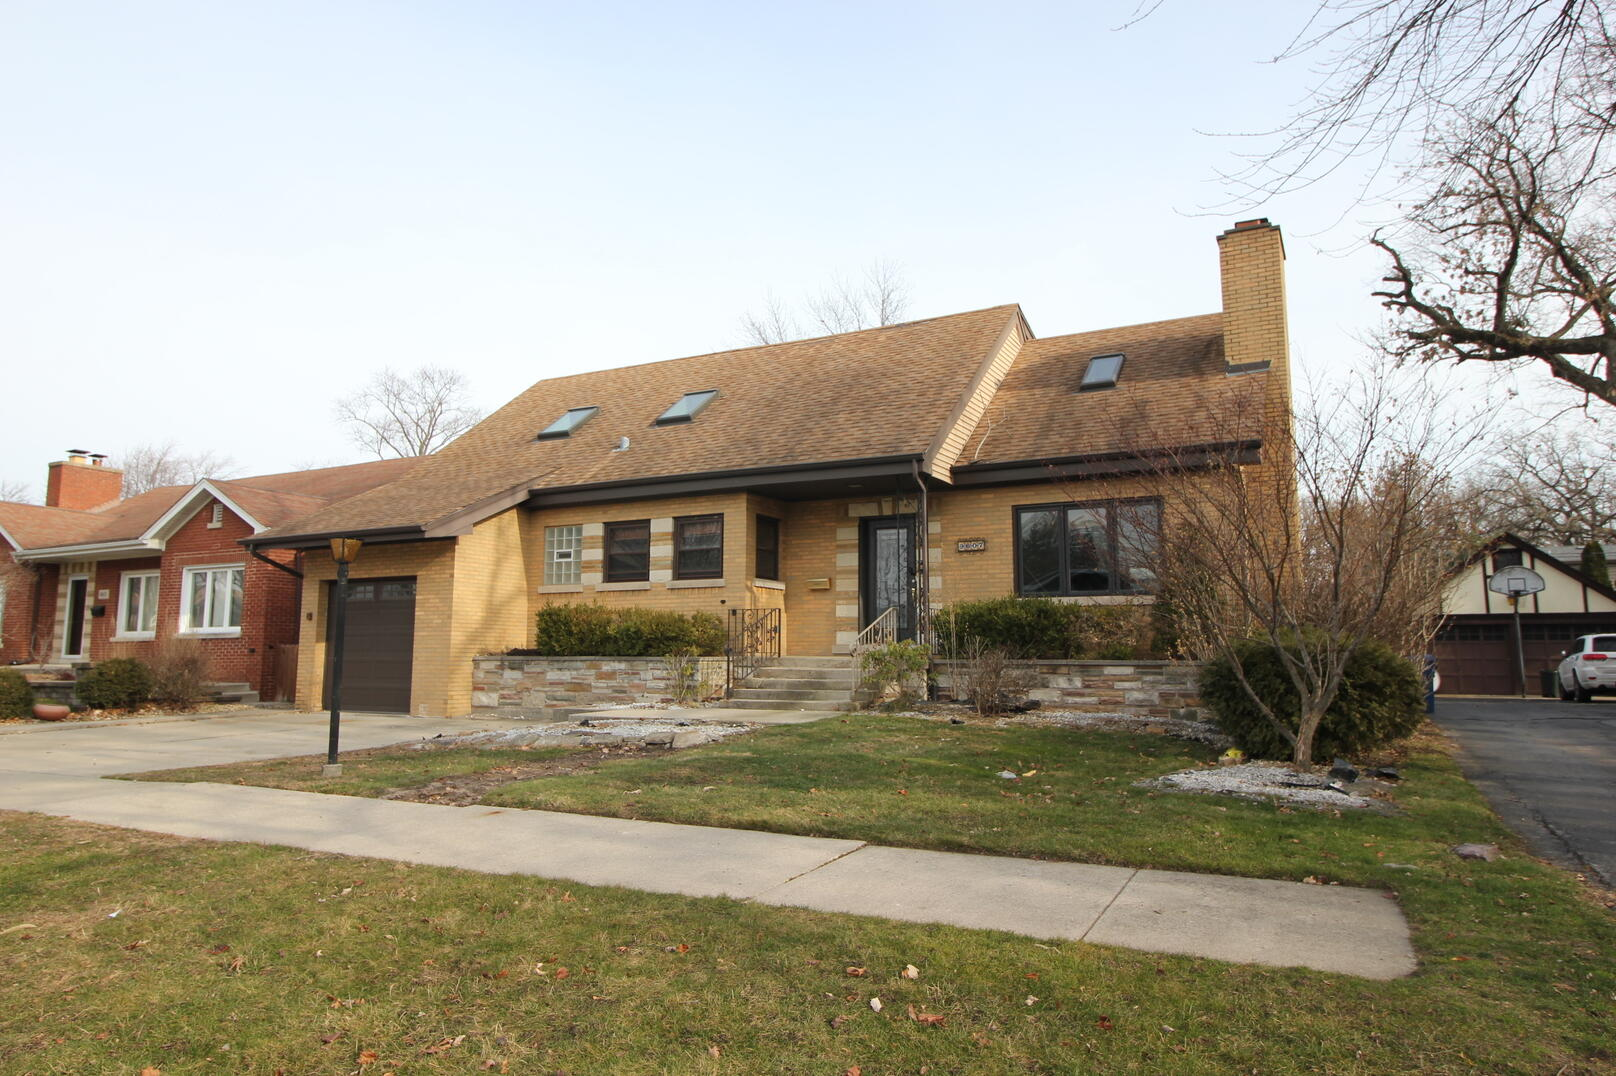 Photo of 9607 Major Oak Lawn IL 60453